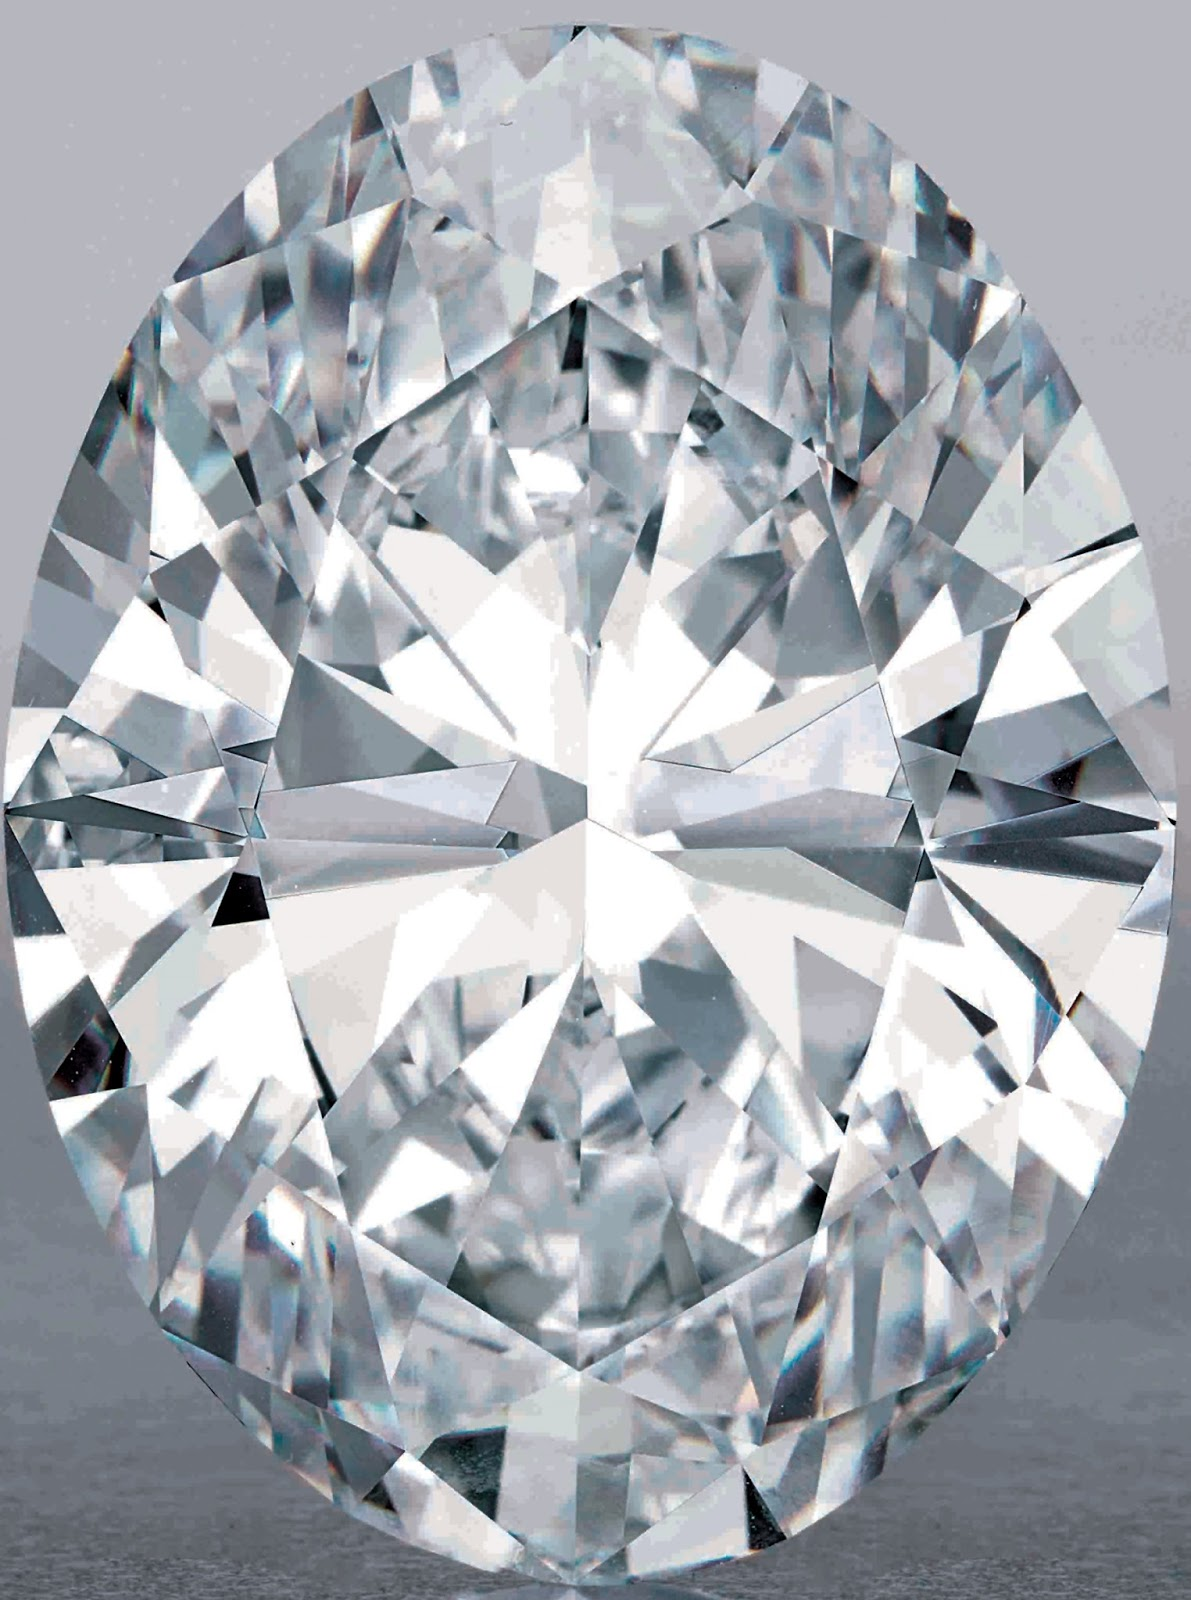 118.28-carat, D-color, flawless, Type IIa, magnificent oval diamond. Image: Sotheby's